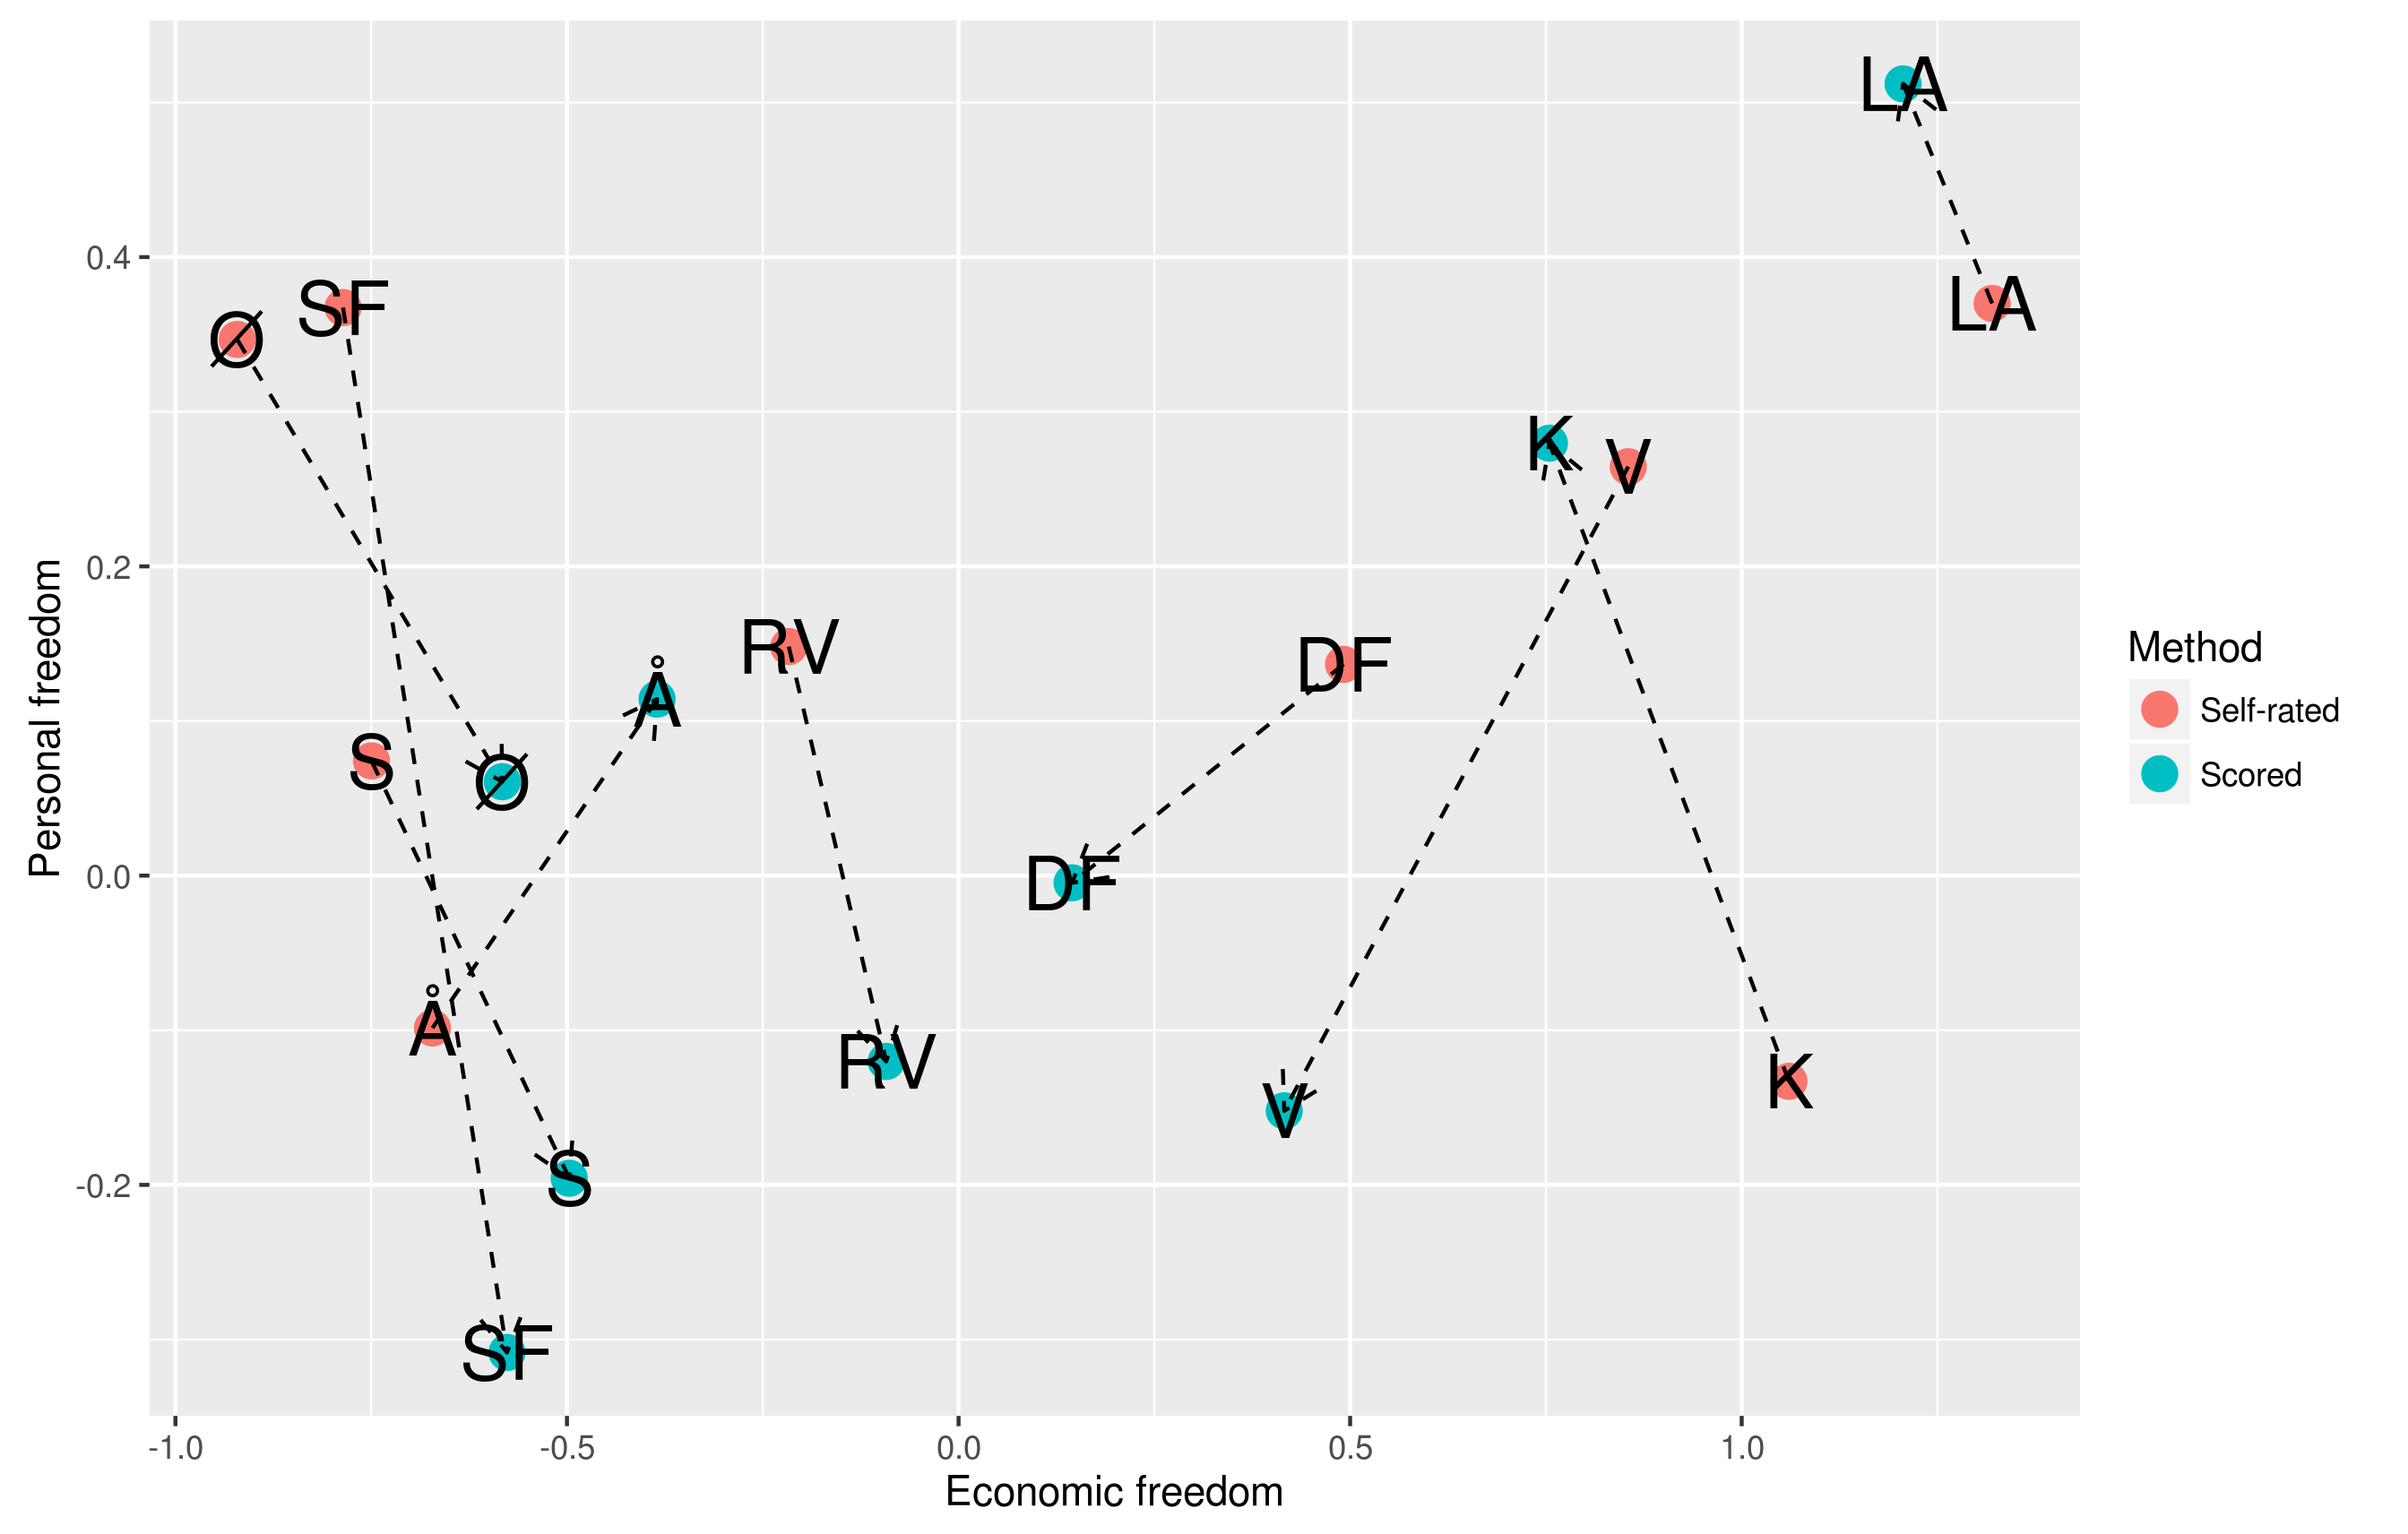 Cognitive ability and political preferences in Denmark: knitr edition